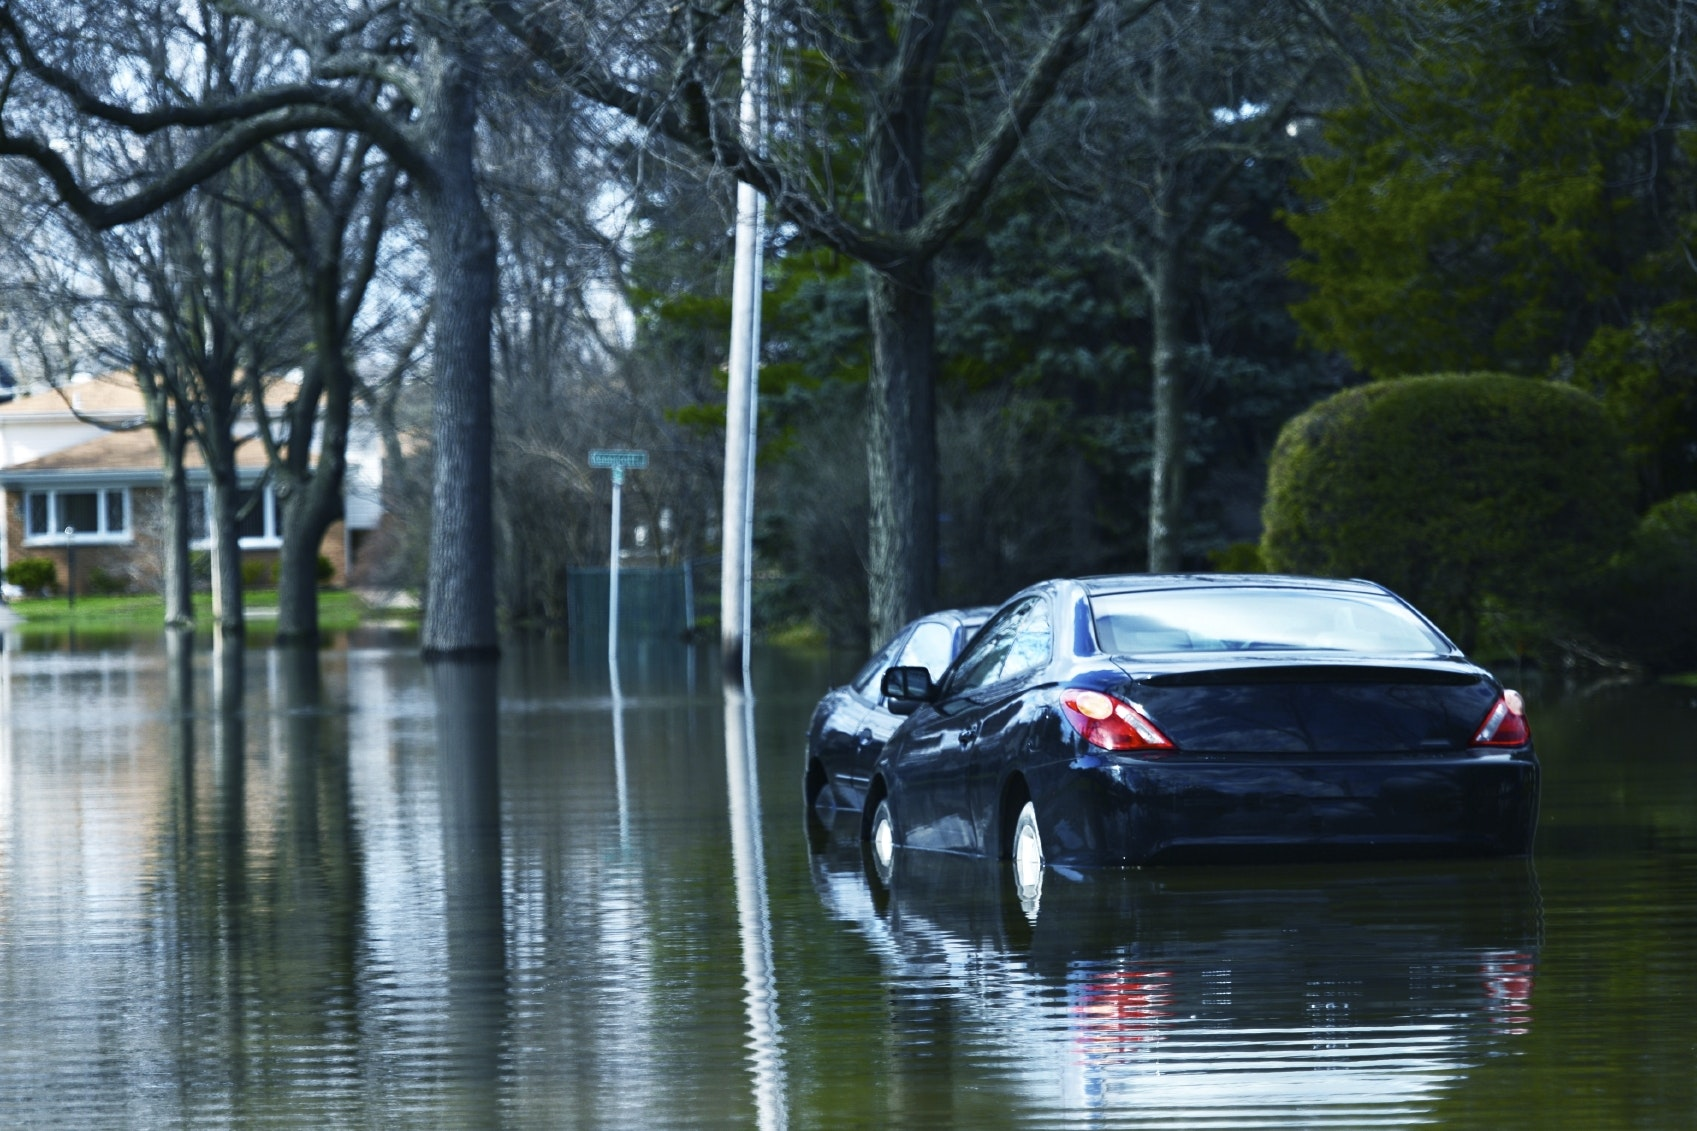 How to Detect Flood Damage on Vehicles